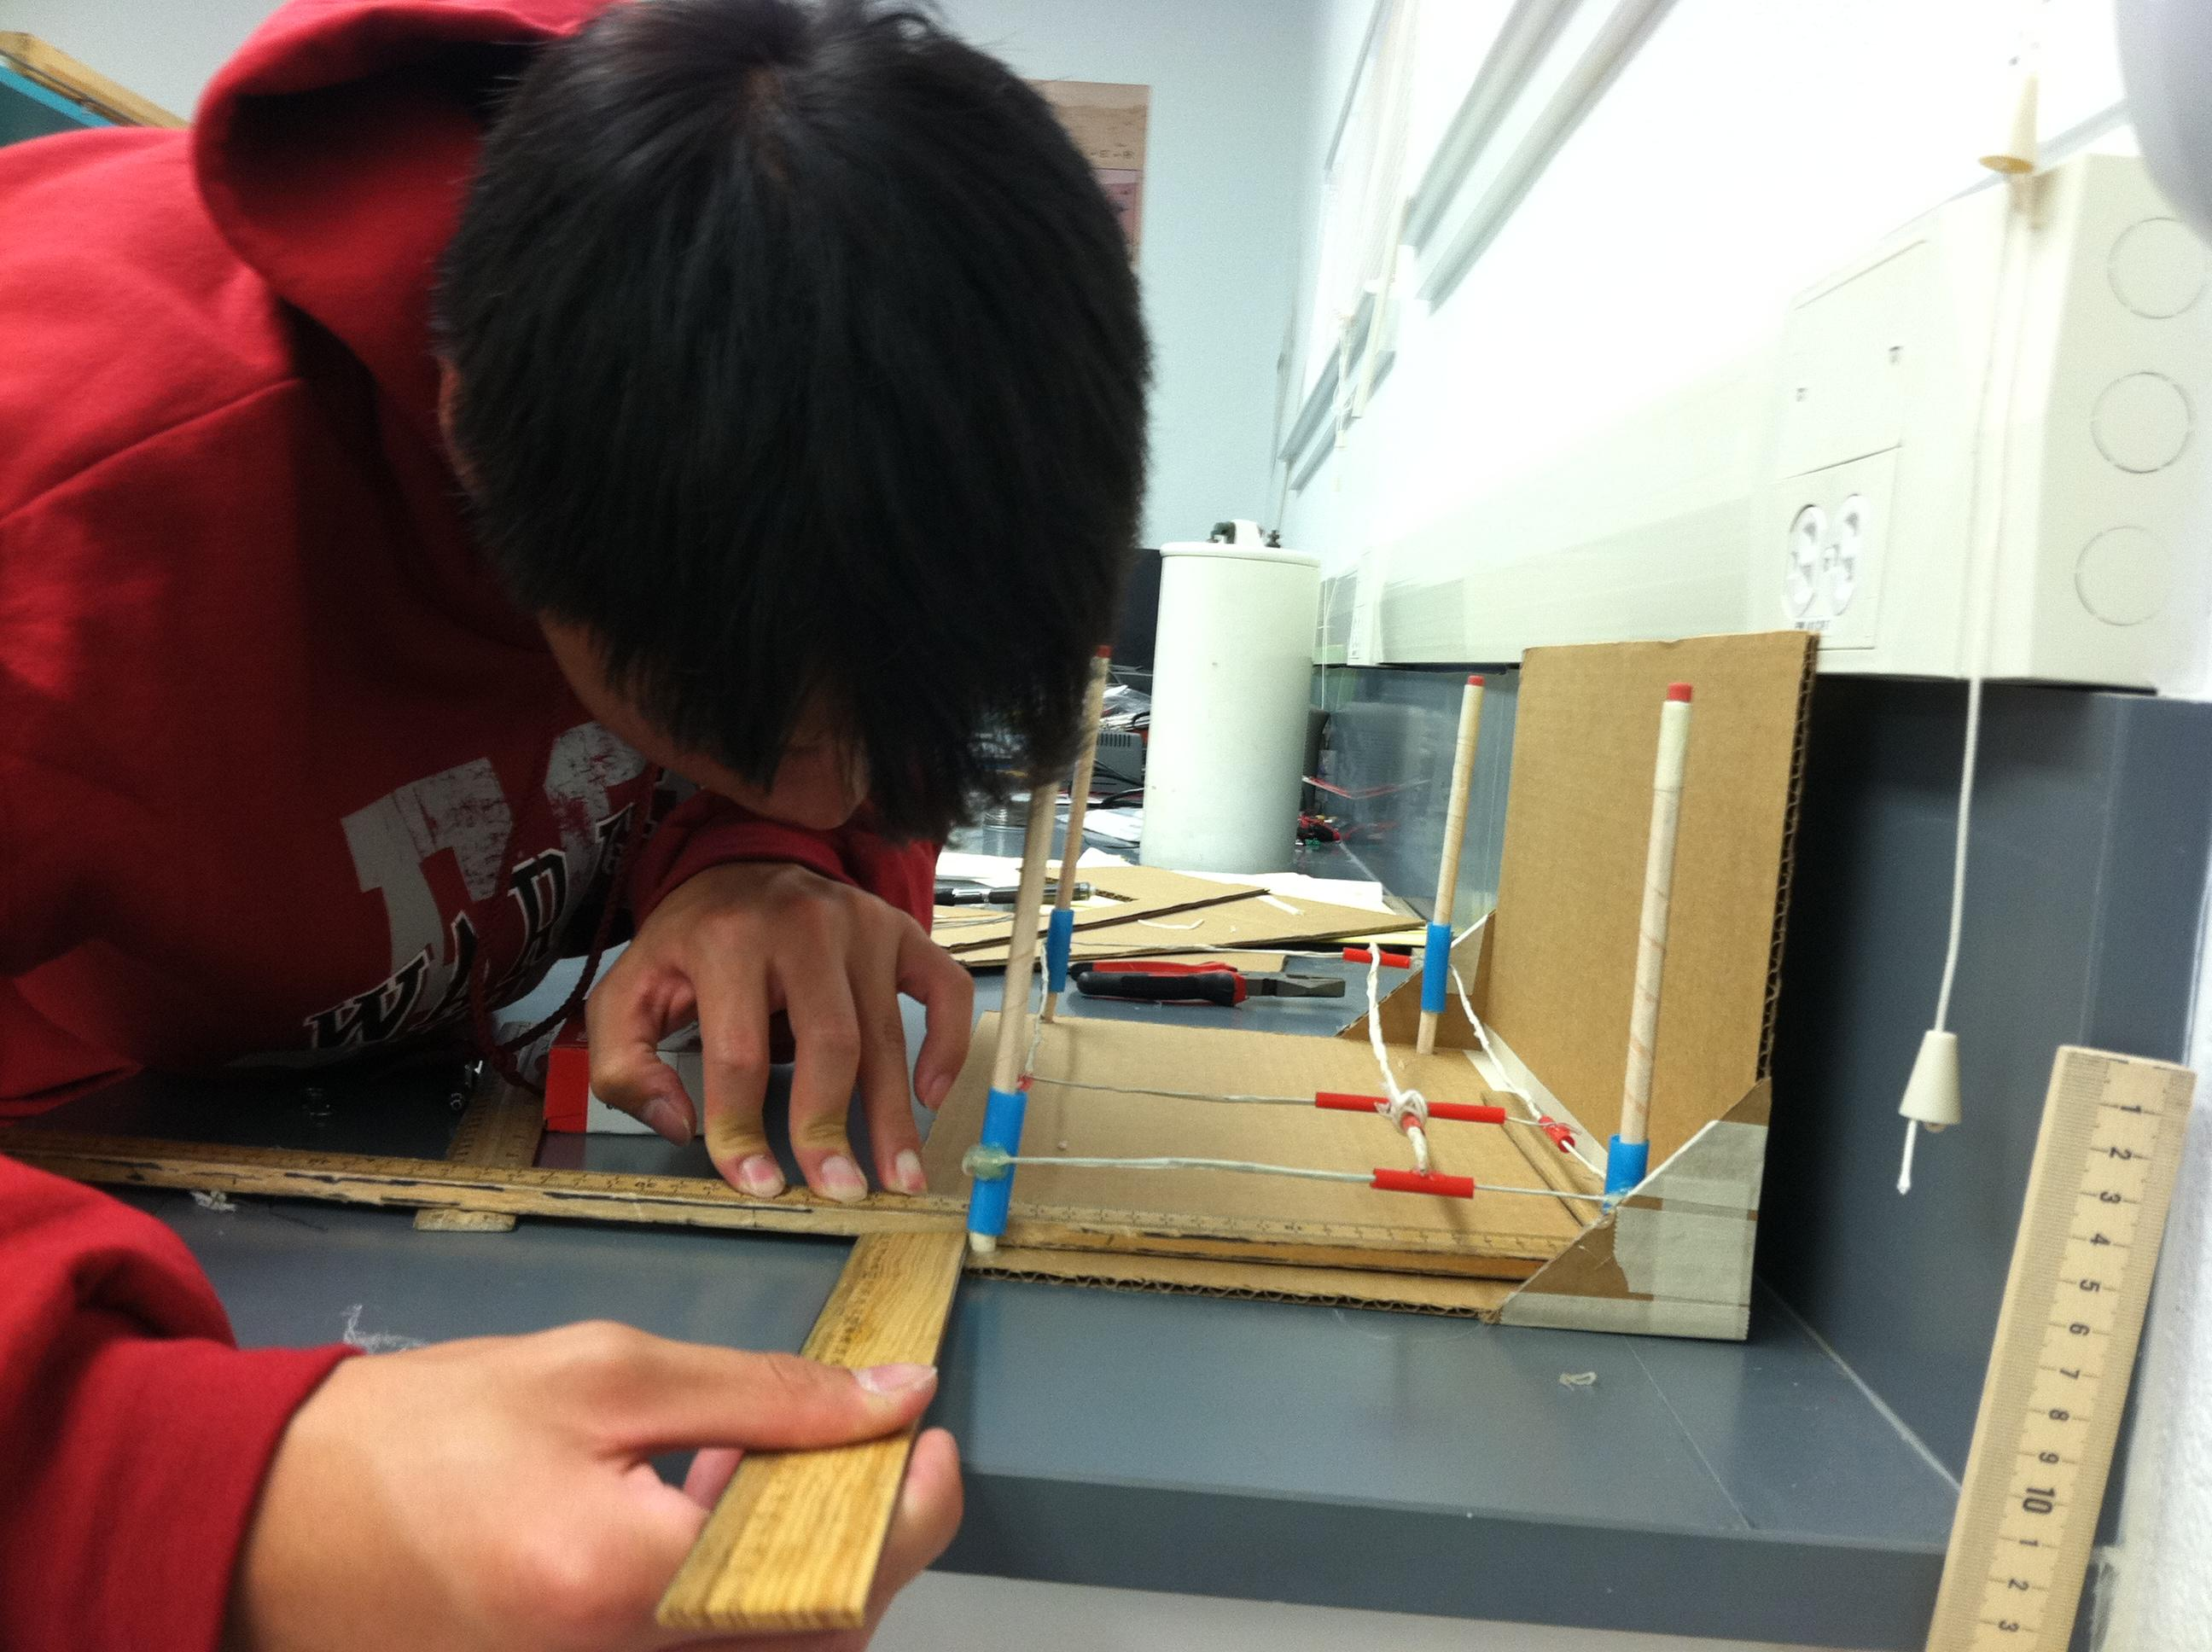 NASA - NanoRacks-Fremont Christian High School-Micro-Robot